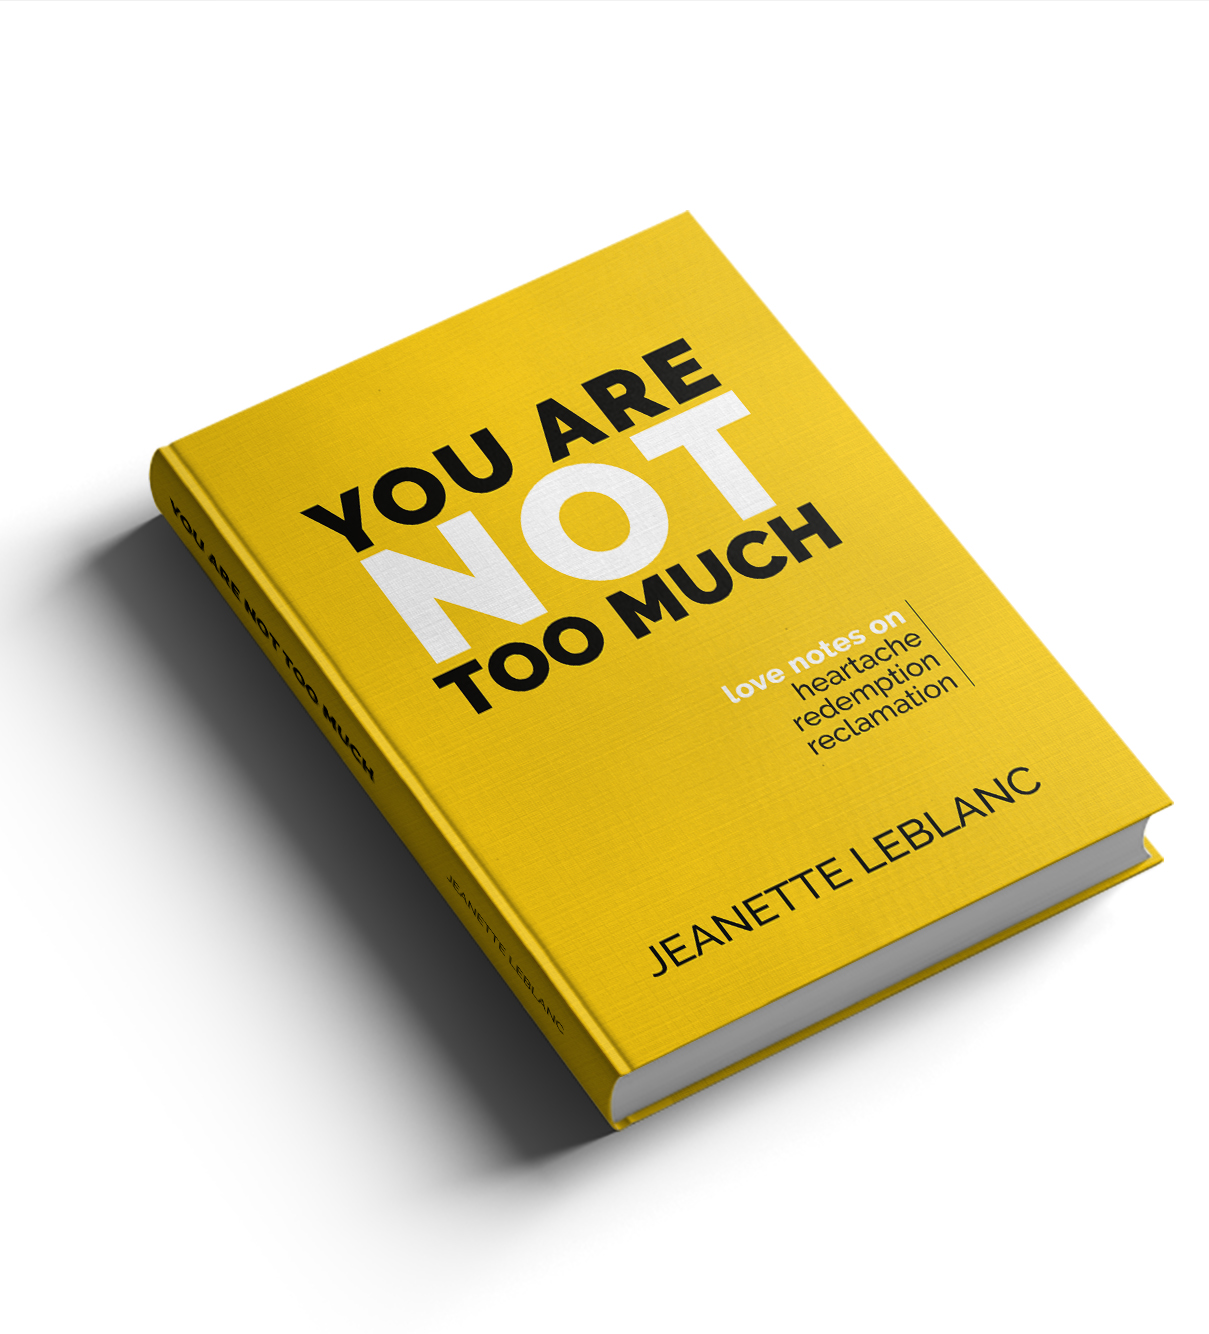 You Are Not Too Much: Love Notes on Heartache, Redemption & Reclamation - A book by Jeanette LeBlanc